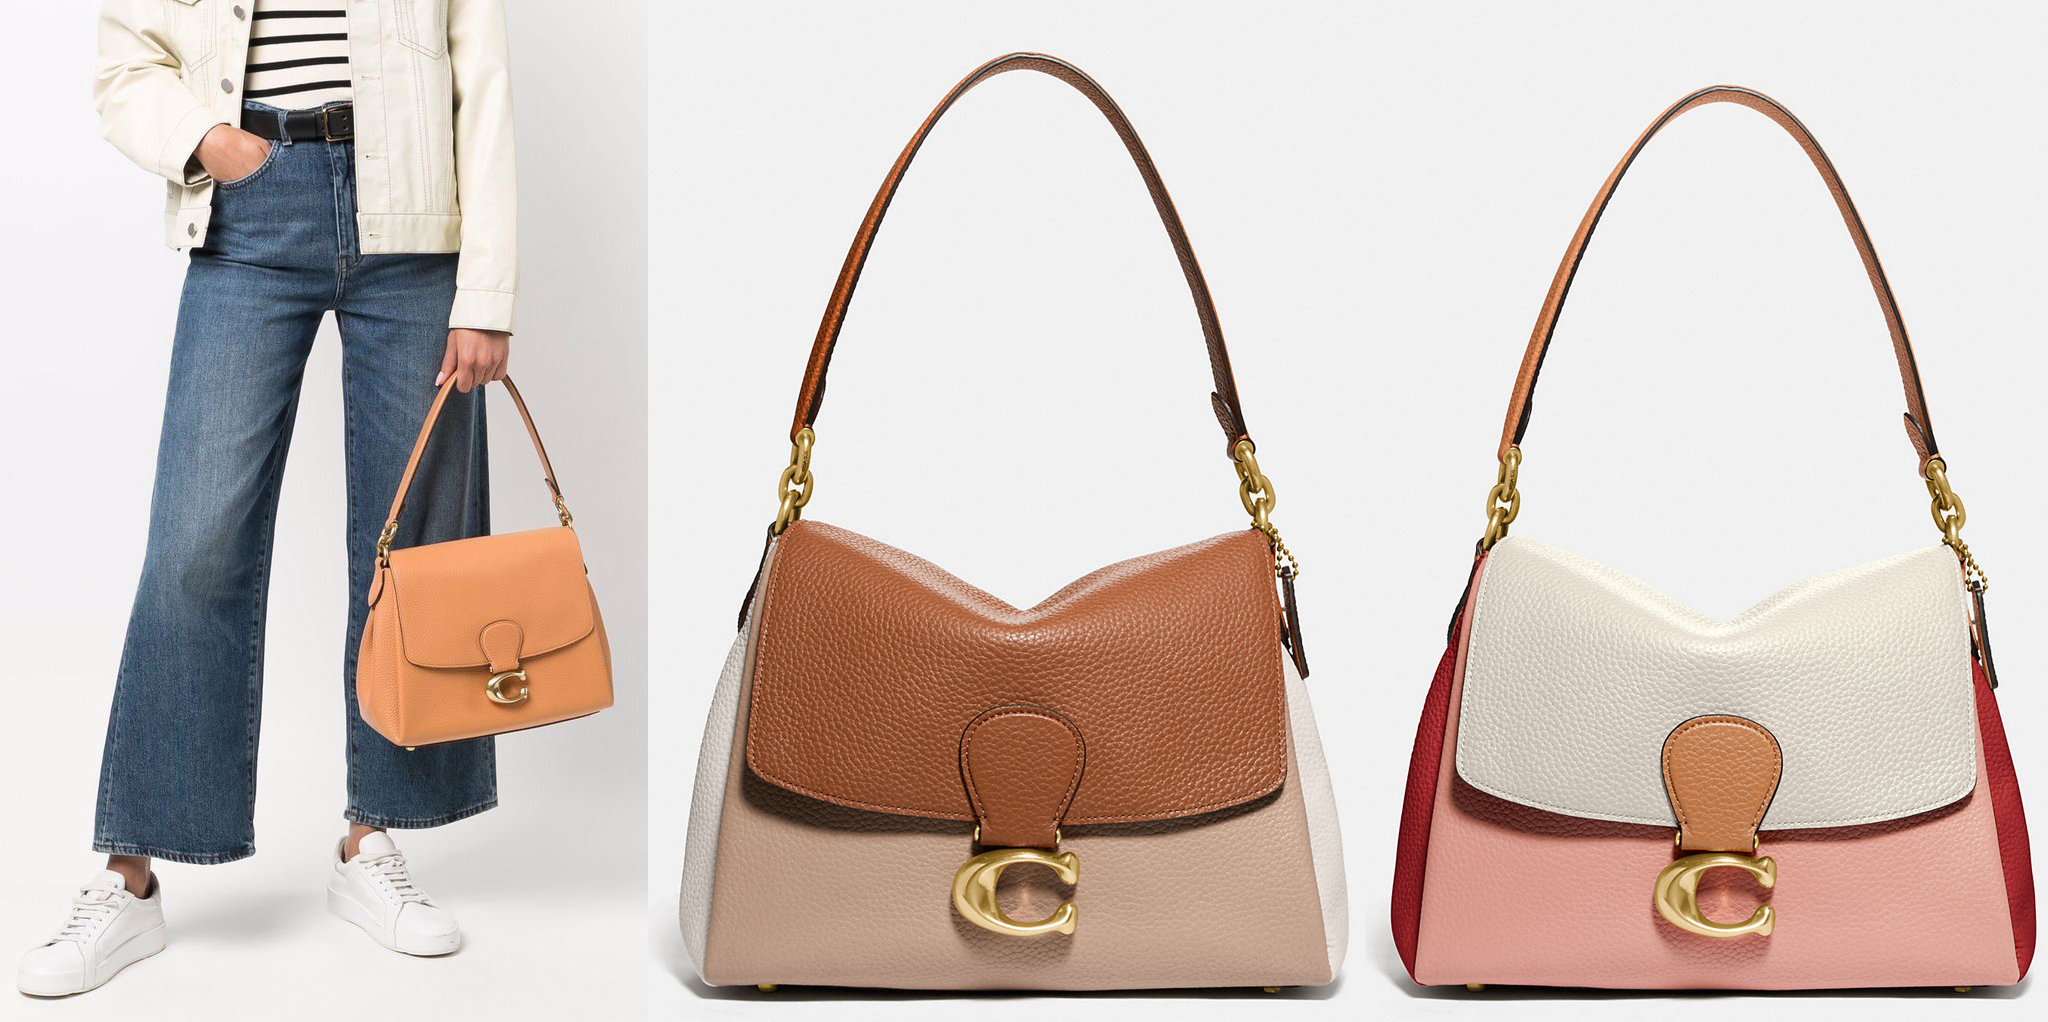 Featuring a minimalist timeless design, the Coach May bag has the classic C logo hardware on the front flap